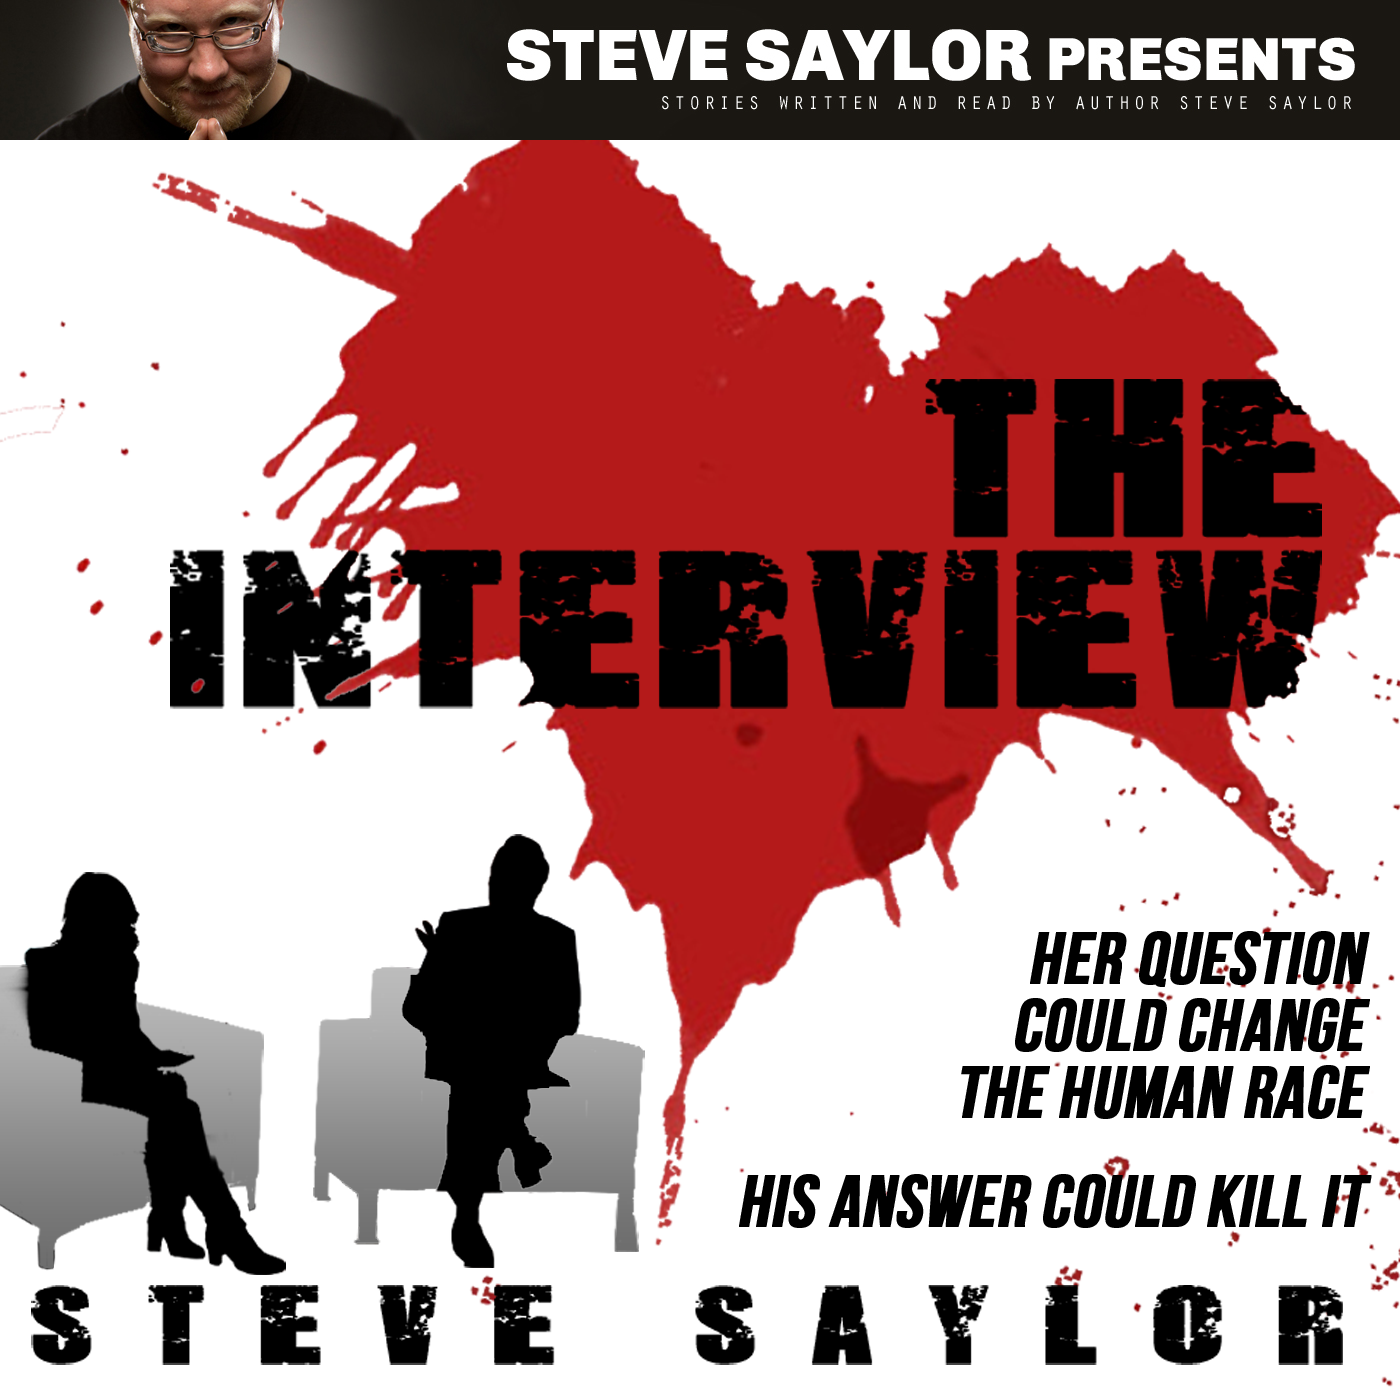 InterviewAlbumCover-300x300.png